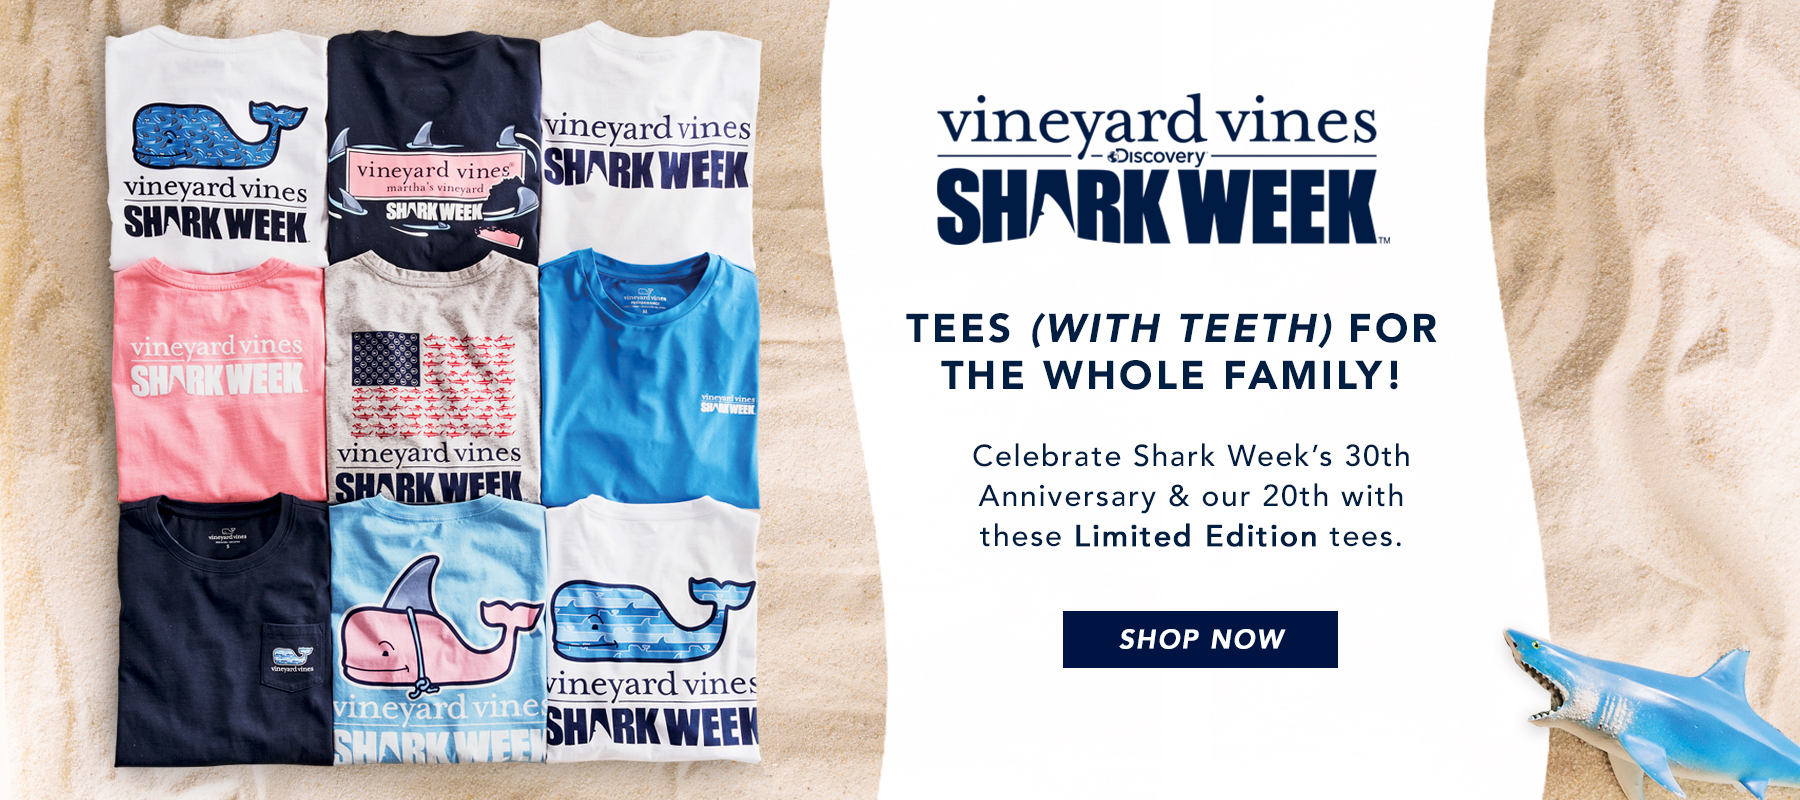 vineyard vines x Shark Week. Tees (with teeth) for the whole family. Celebrate Shark Week's 30th Anniversary & our 20th with these Limited Edition tees. Shop Now